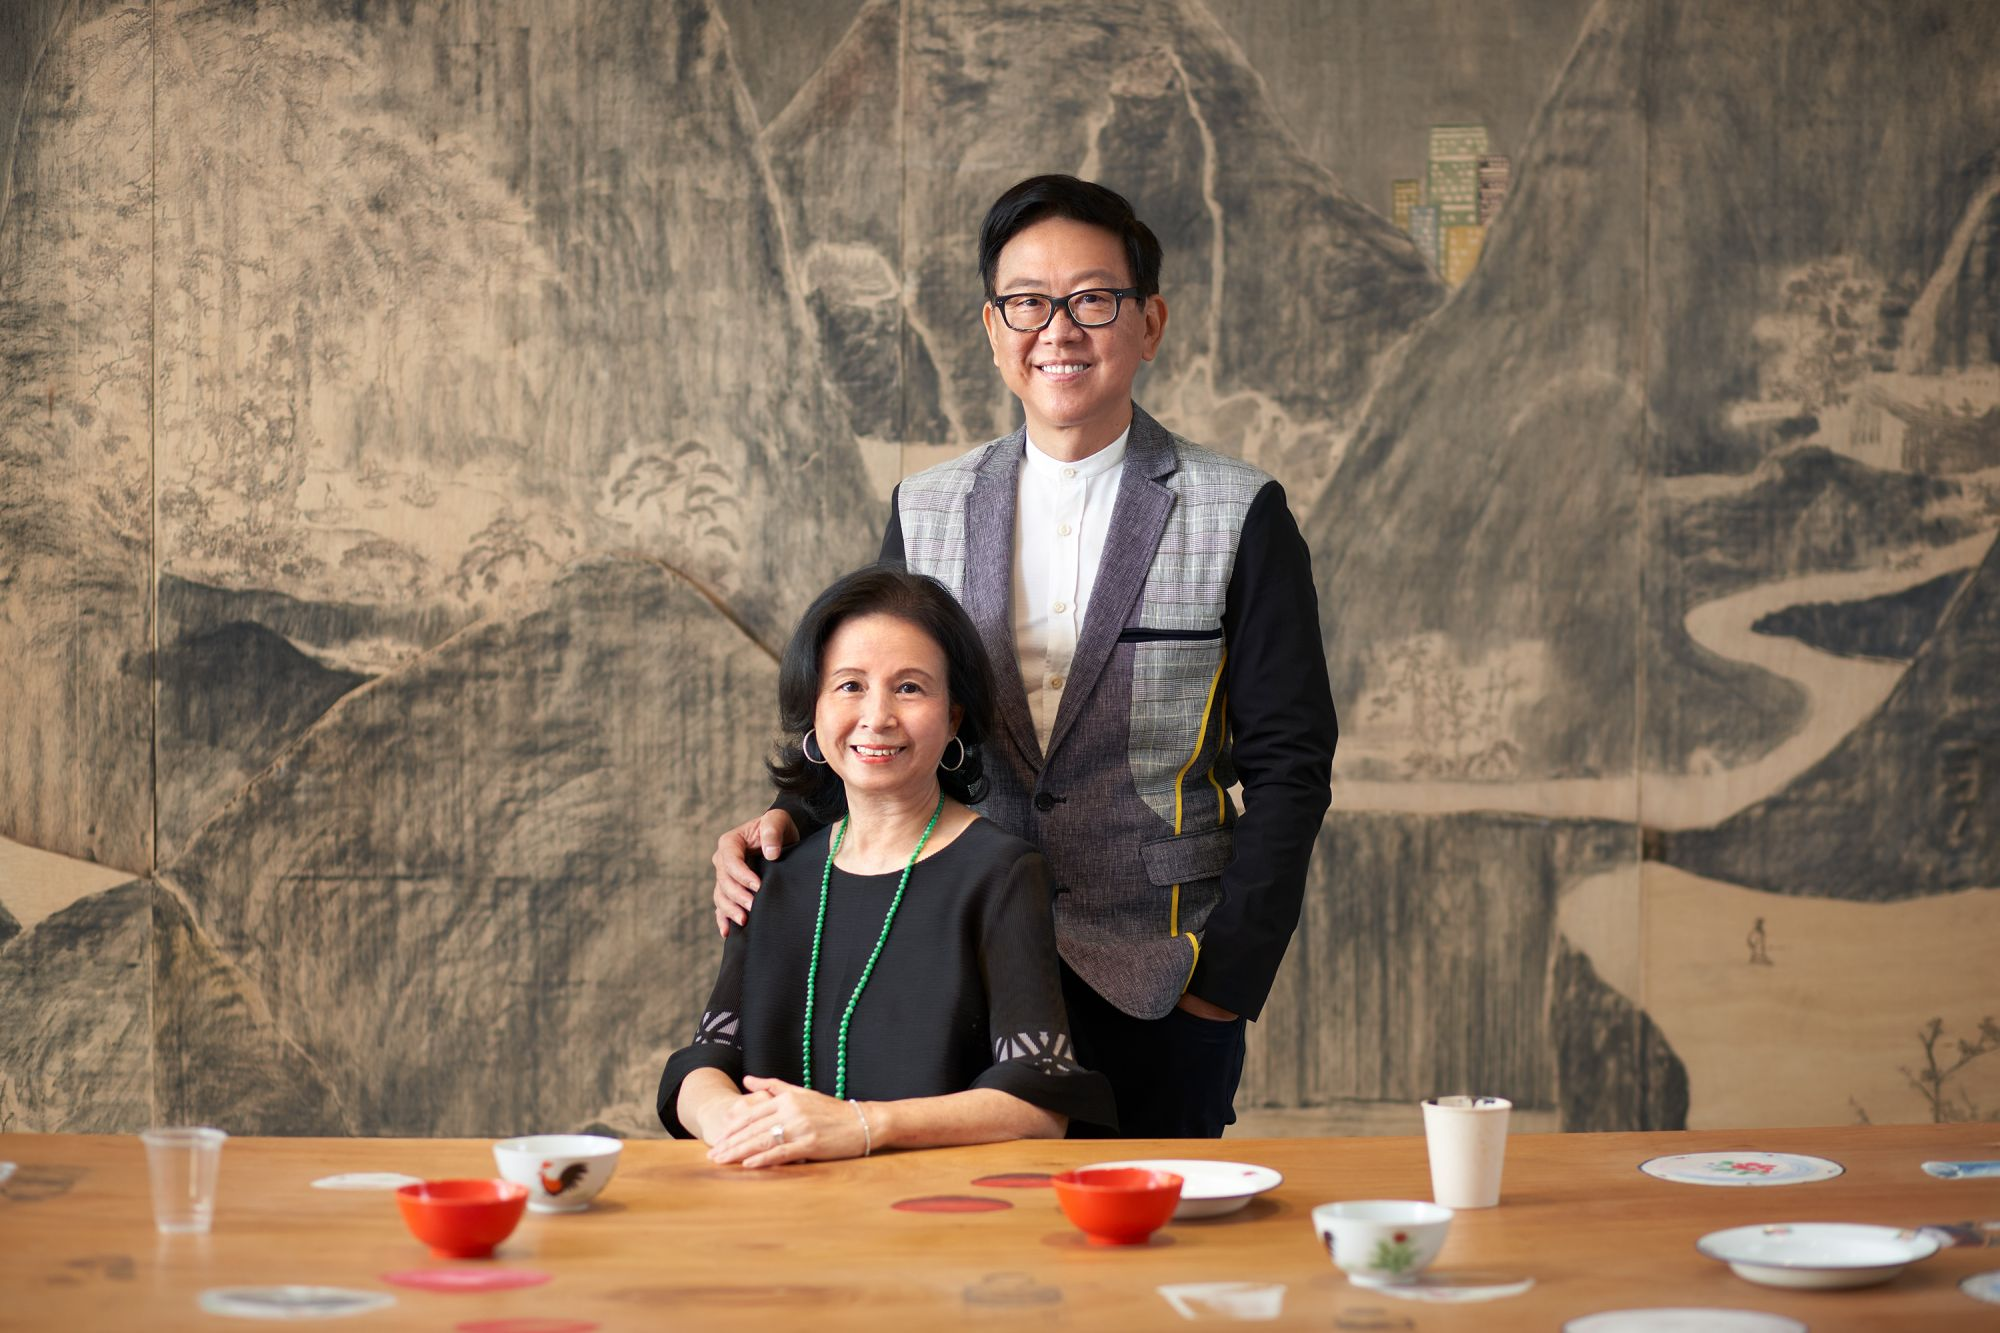 Art Collectors William And Lavina Lim Donate Nearly 100 Artworks To M+ In Hong Kong